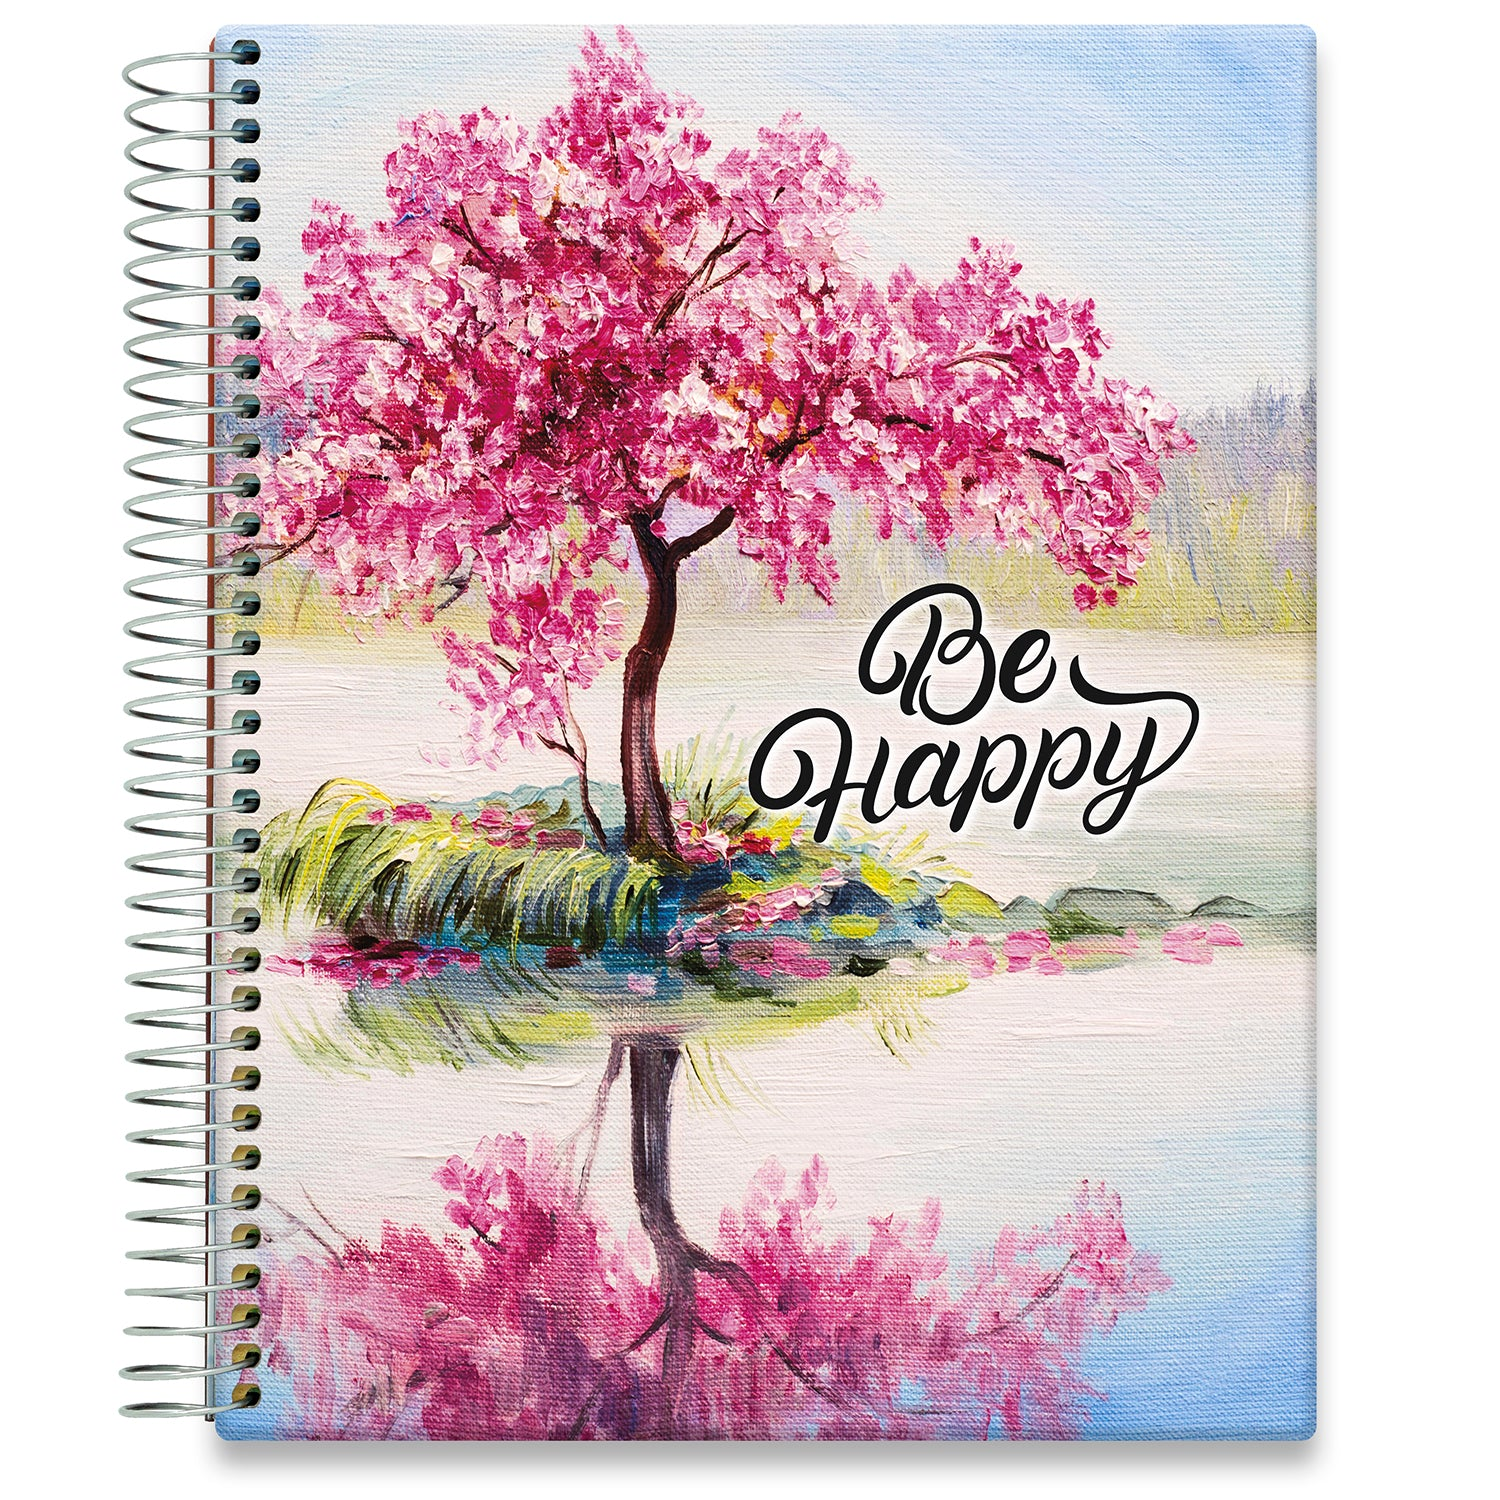 Planner 2021-2022 • April 2021 to June 2022 Academic Year • 8.5x11 Hardcover • Be Happy Quote